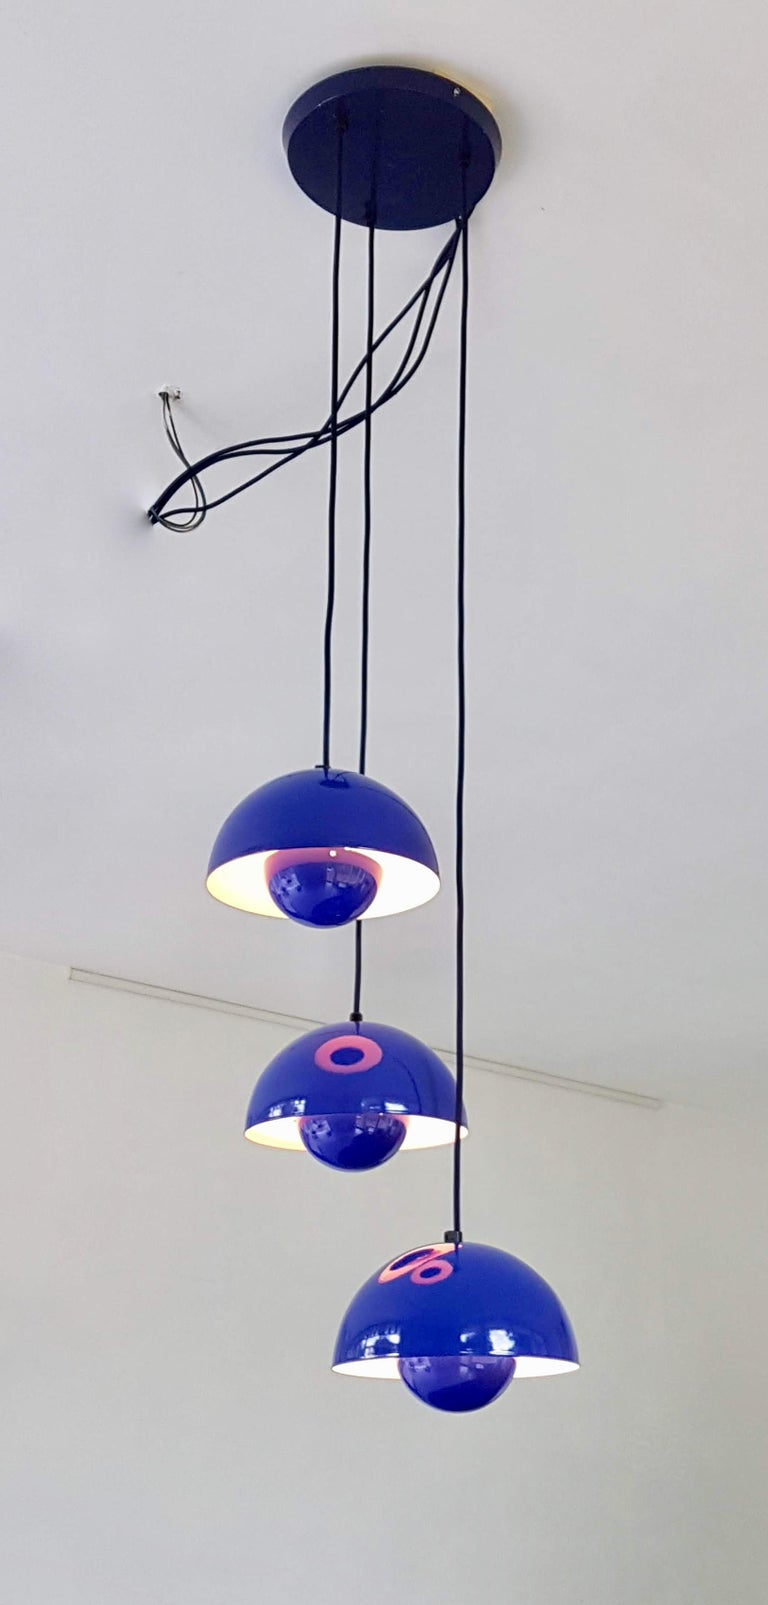 Cluster lamp by Verner Panton, Louis Poulsen Denmark consisting of three iconic 'Flower Pot' lamps mounted on a ceiling plate. The flower pot with its two enameled steel semicircular spheres facing each other is a brilliant colorful design that was